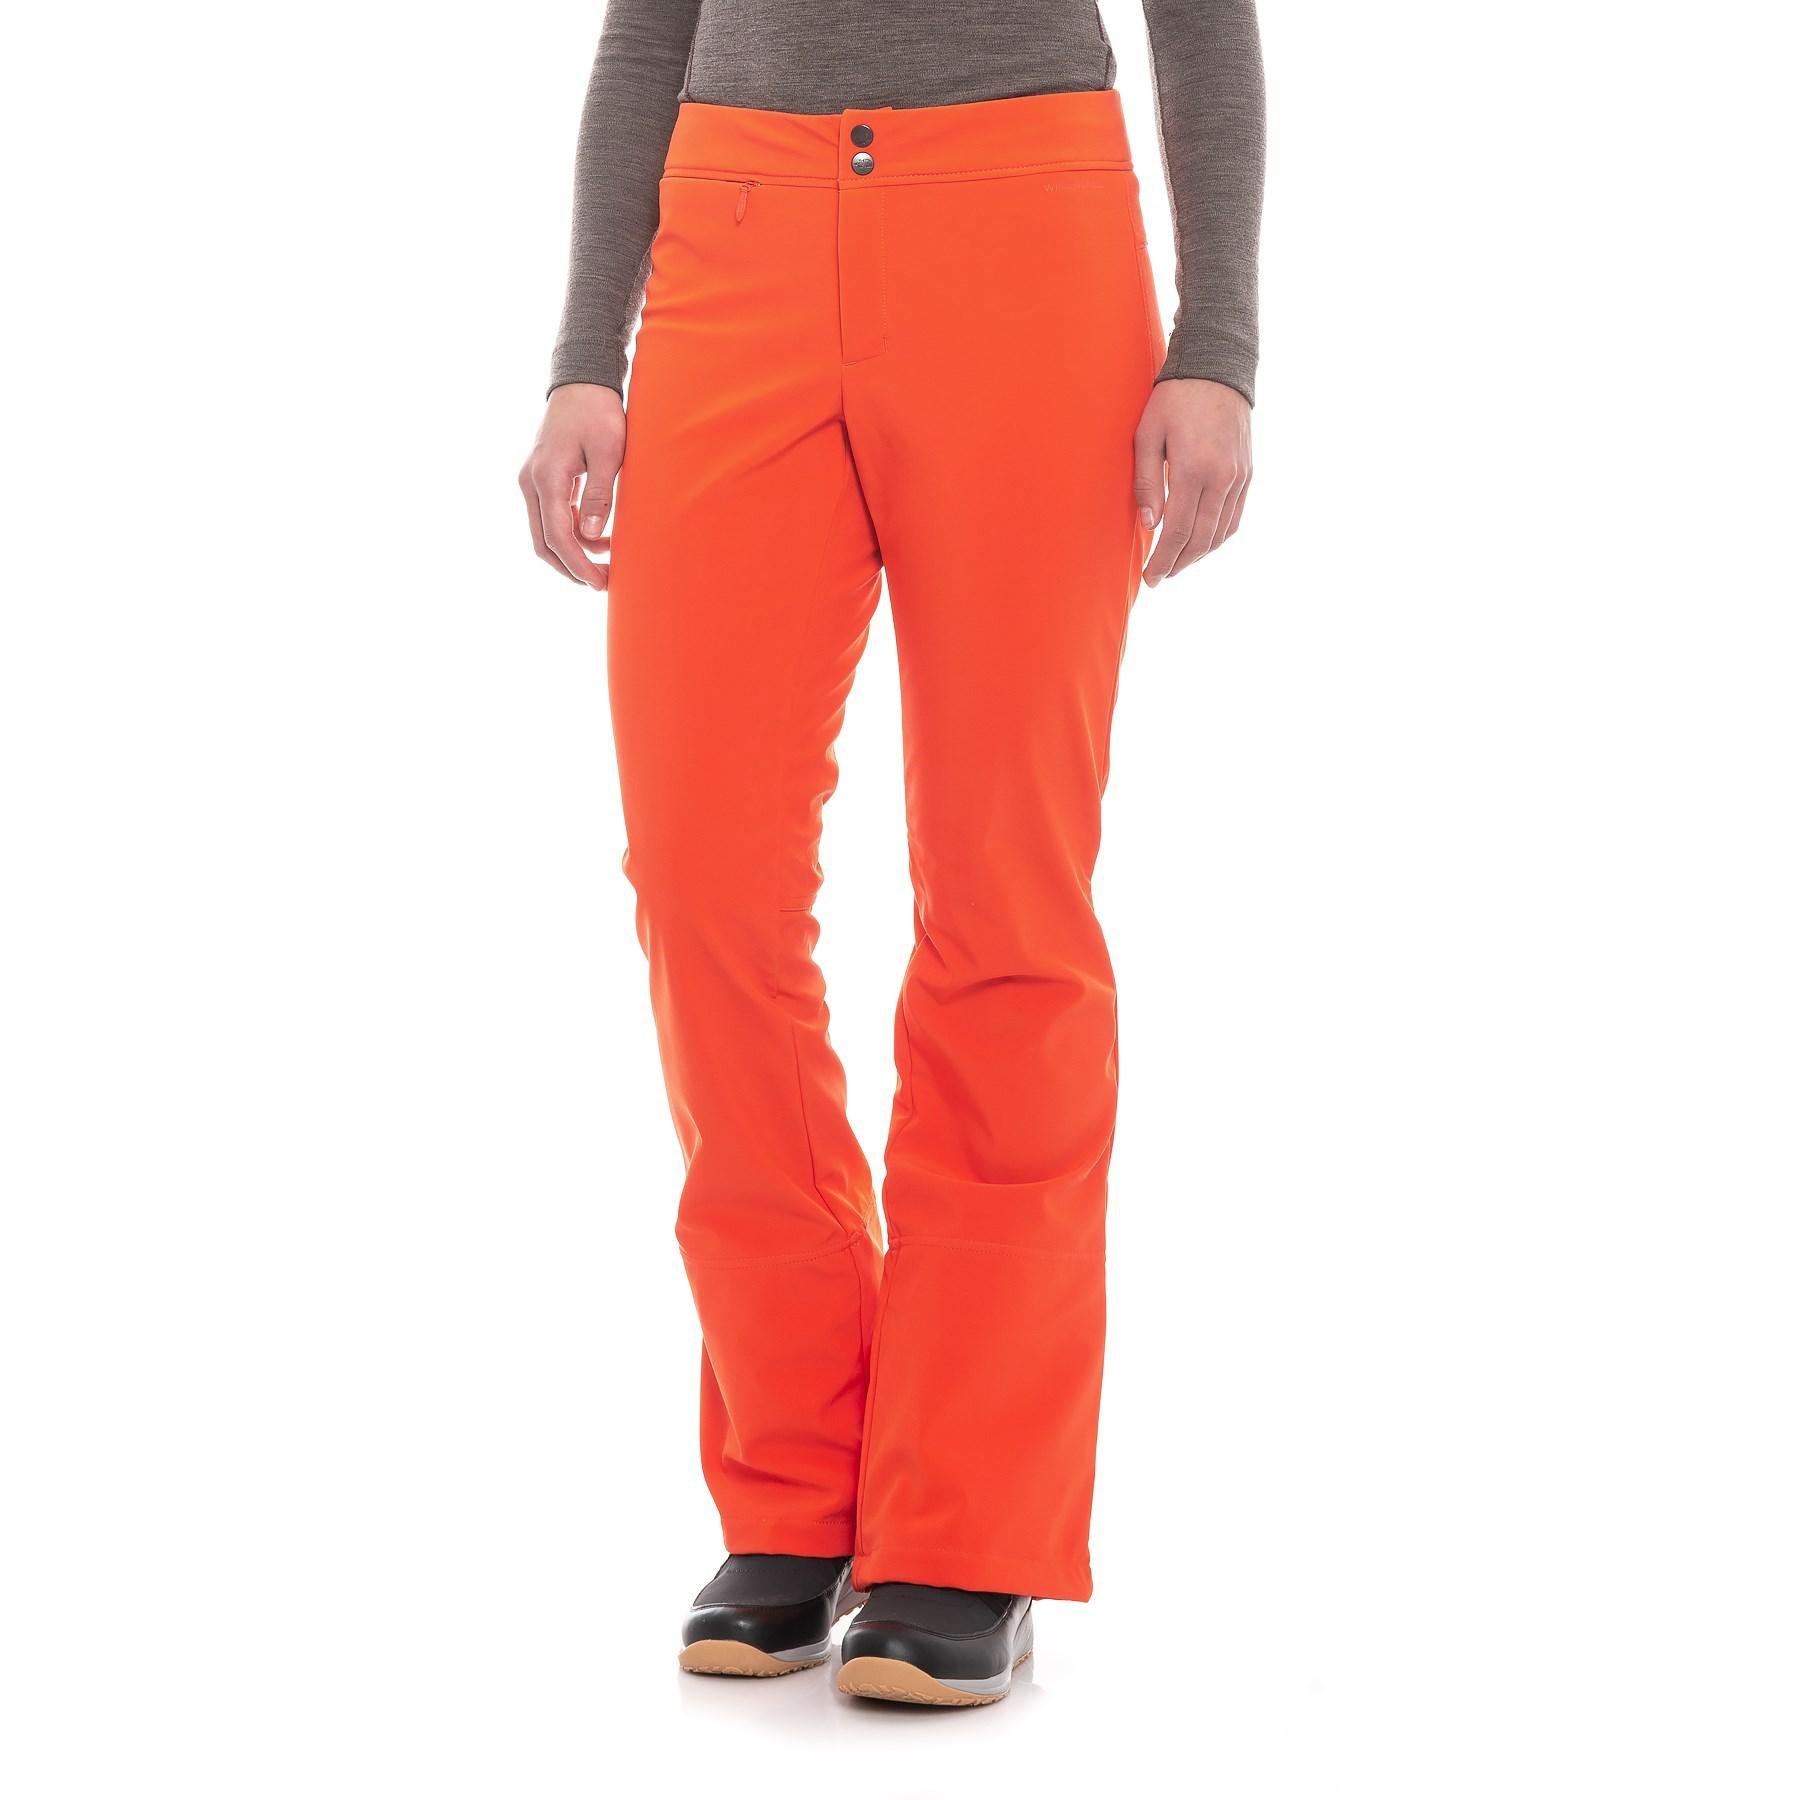 8598536f0 The North Face Red Apex Sth Soft Shell Pants (for Women)